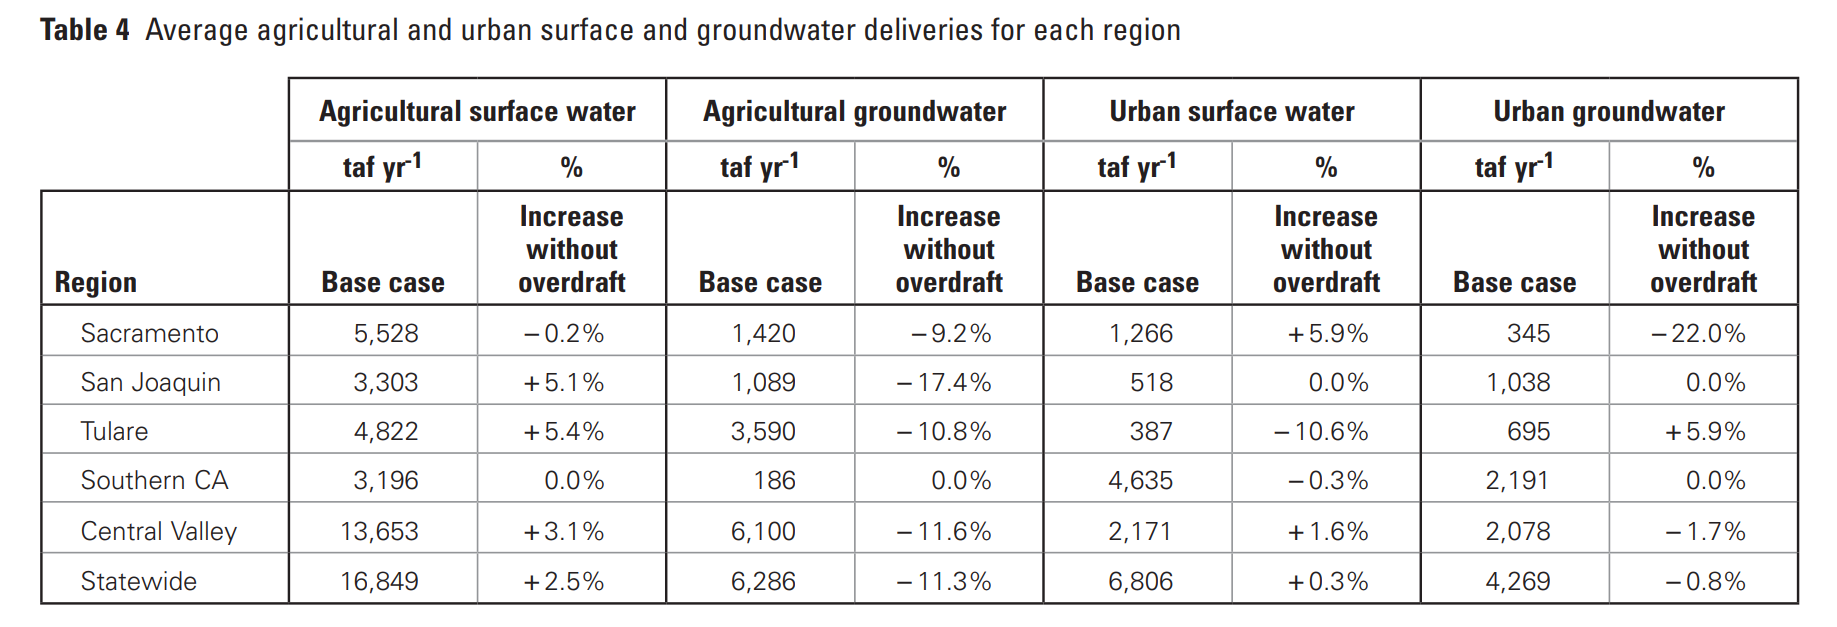 Source:    Economic and Water Supply Effects of Ending Groundwater Overdraft in California's Central Valley